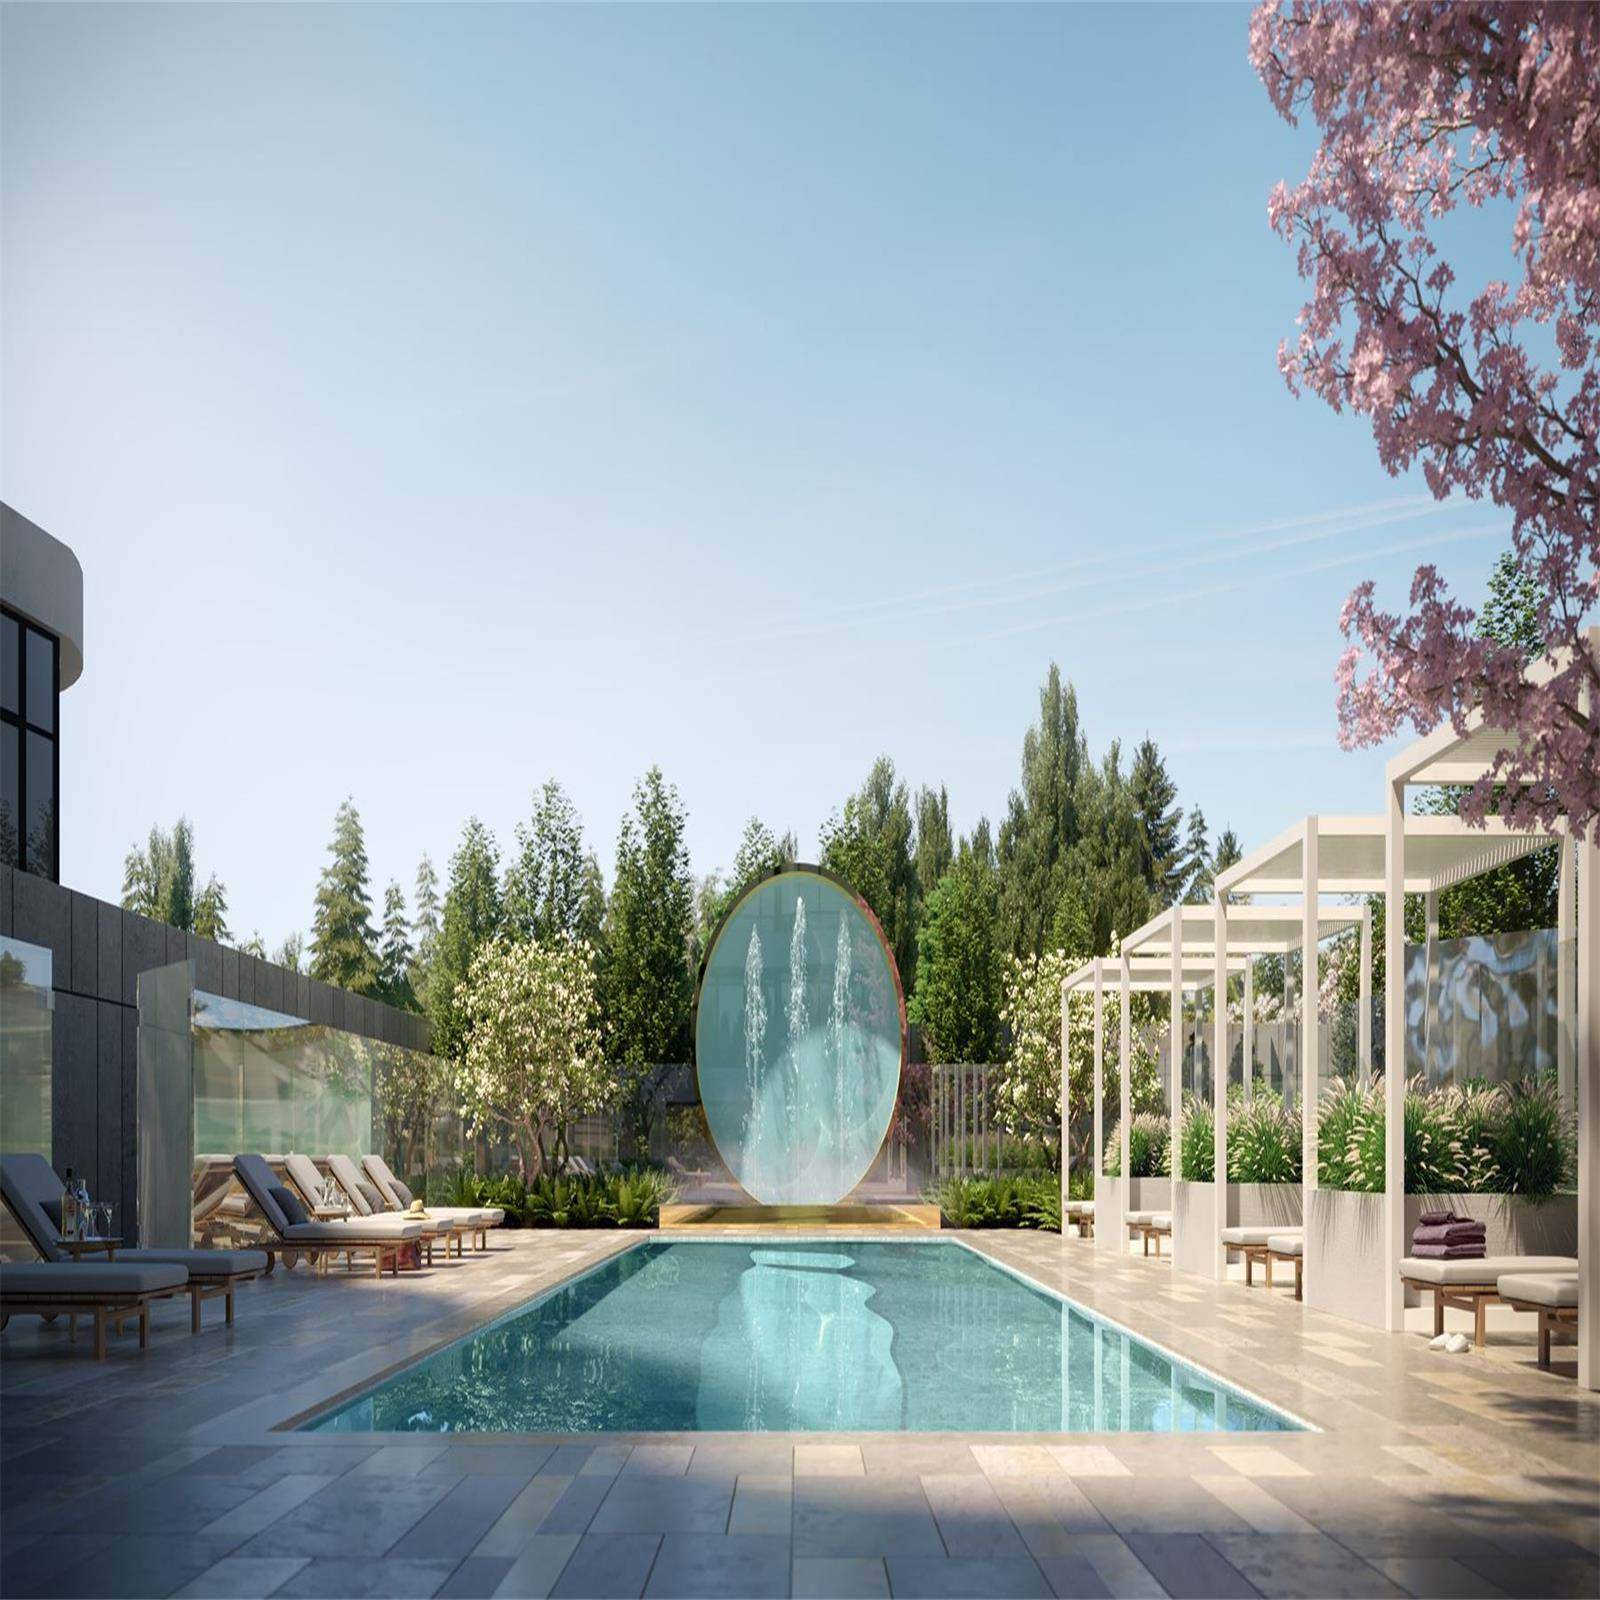 2020_09_03_12_46_15_outdoor_pool_and_patio